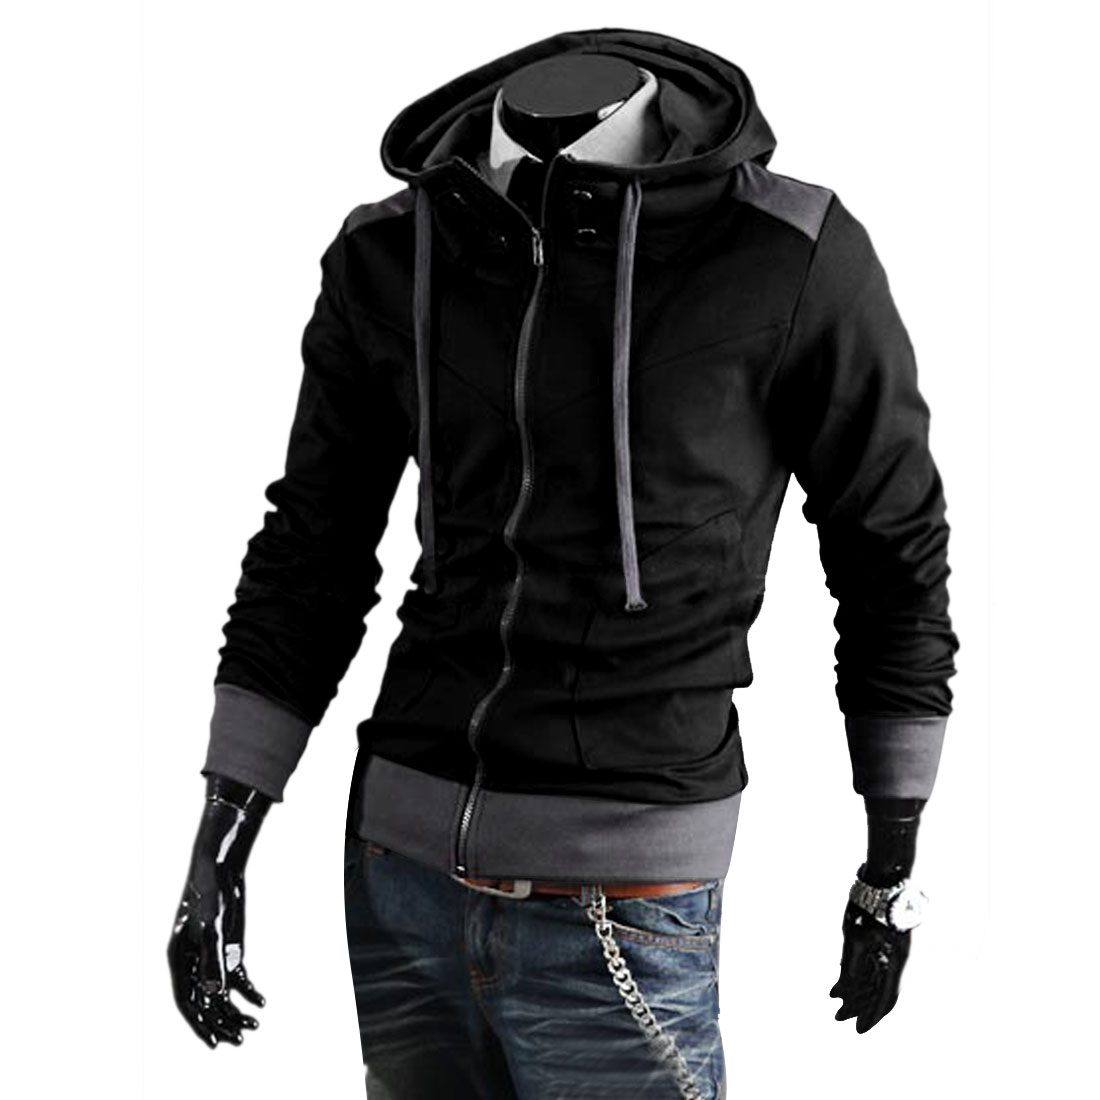 M Black Long Sleeve Slim Fit Style Slant Pockets Men Casual Jackets Hoodies